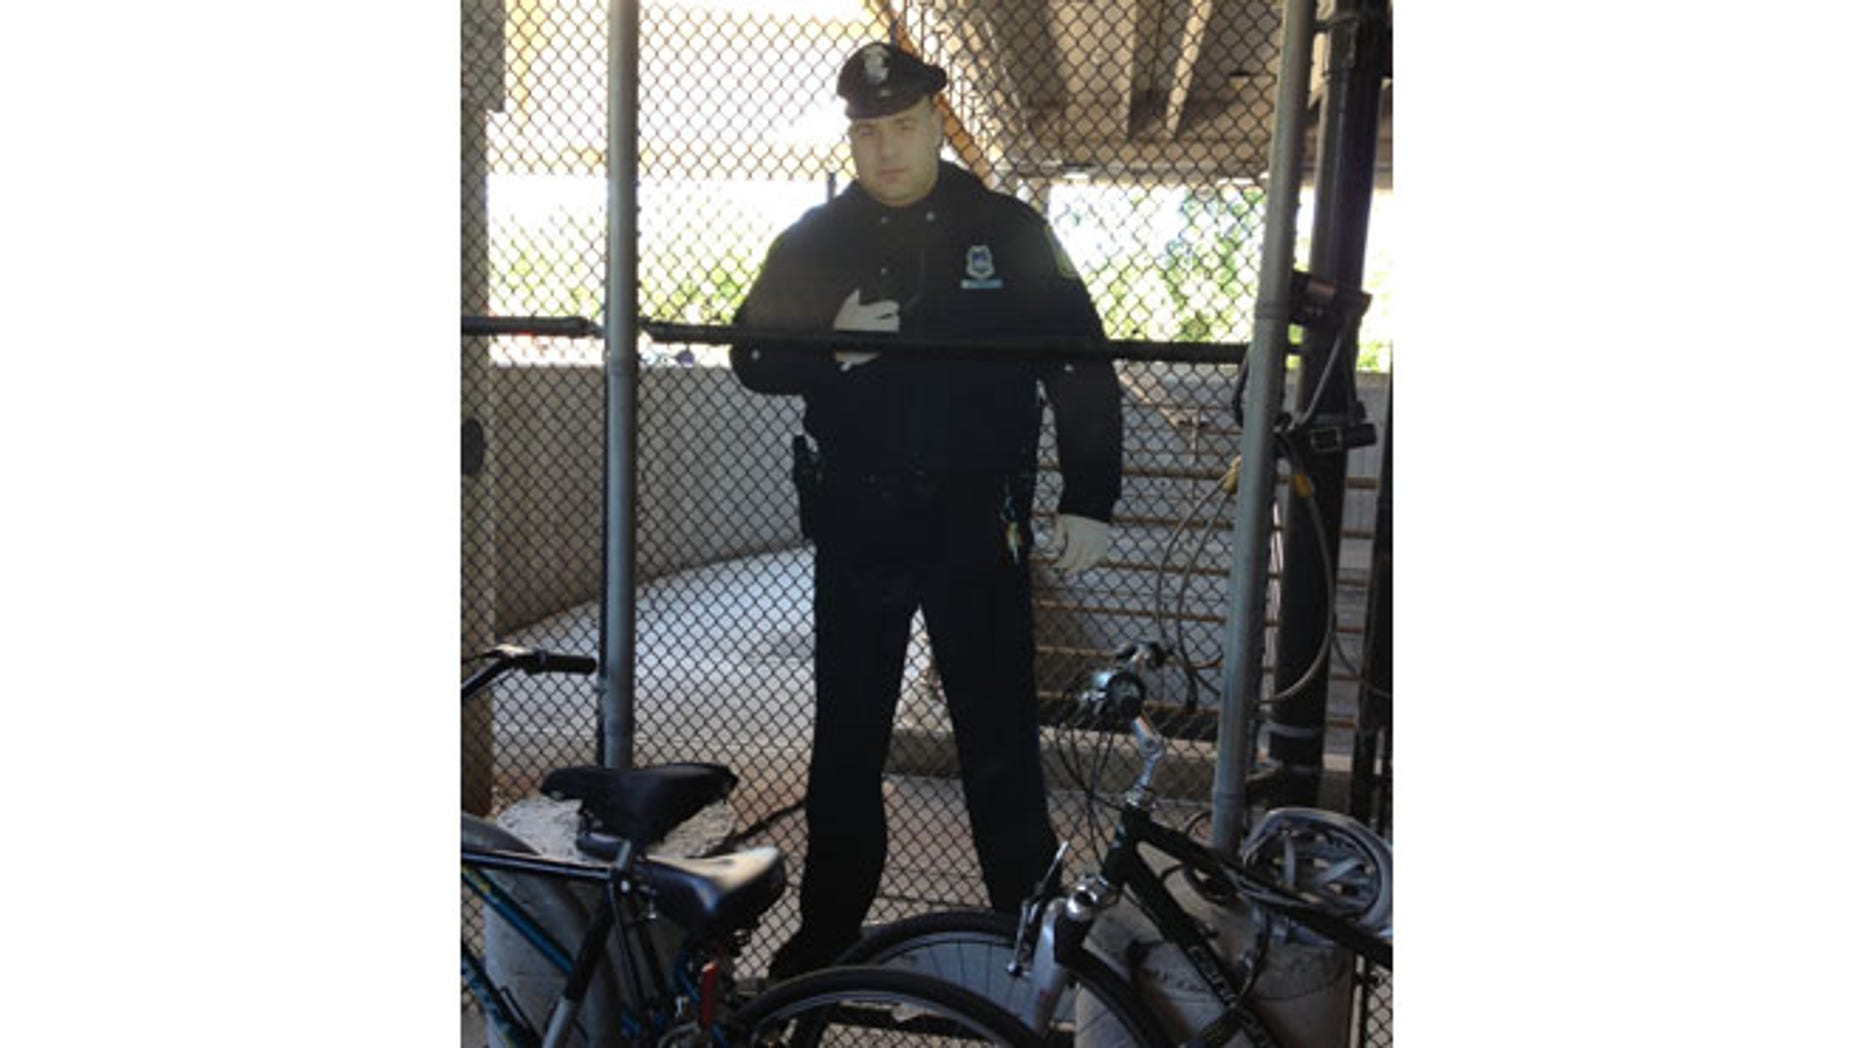 As part of an effort to cut crime, transit police placed a cardboard cutout of a police officer in the bicycle cage.